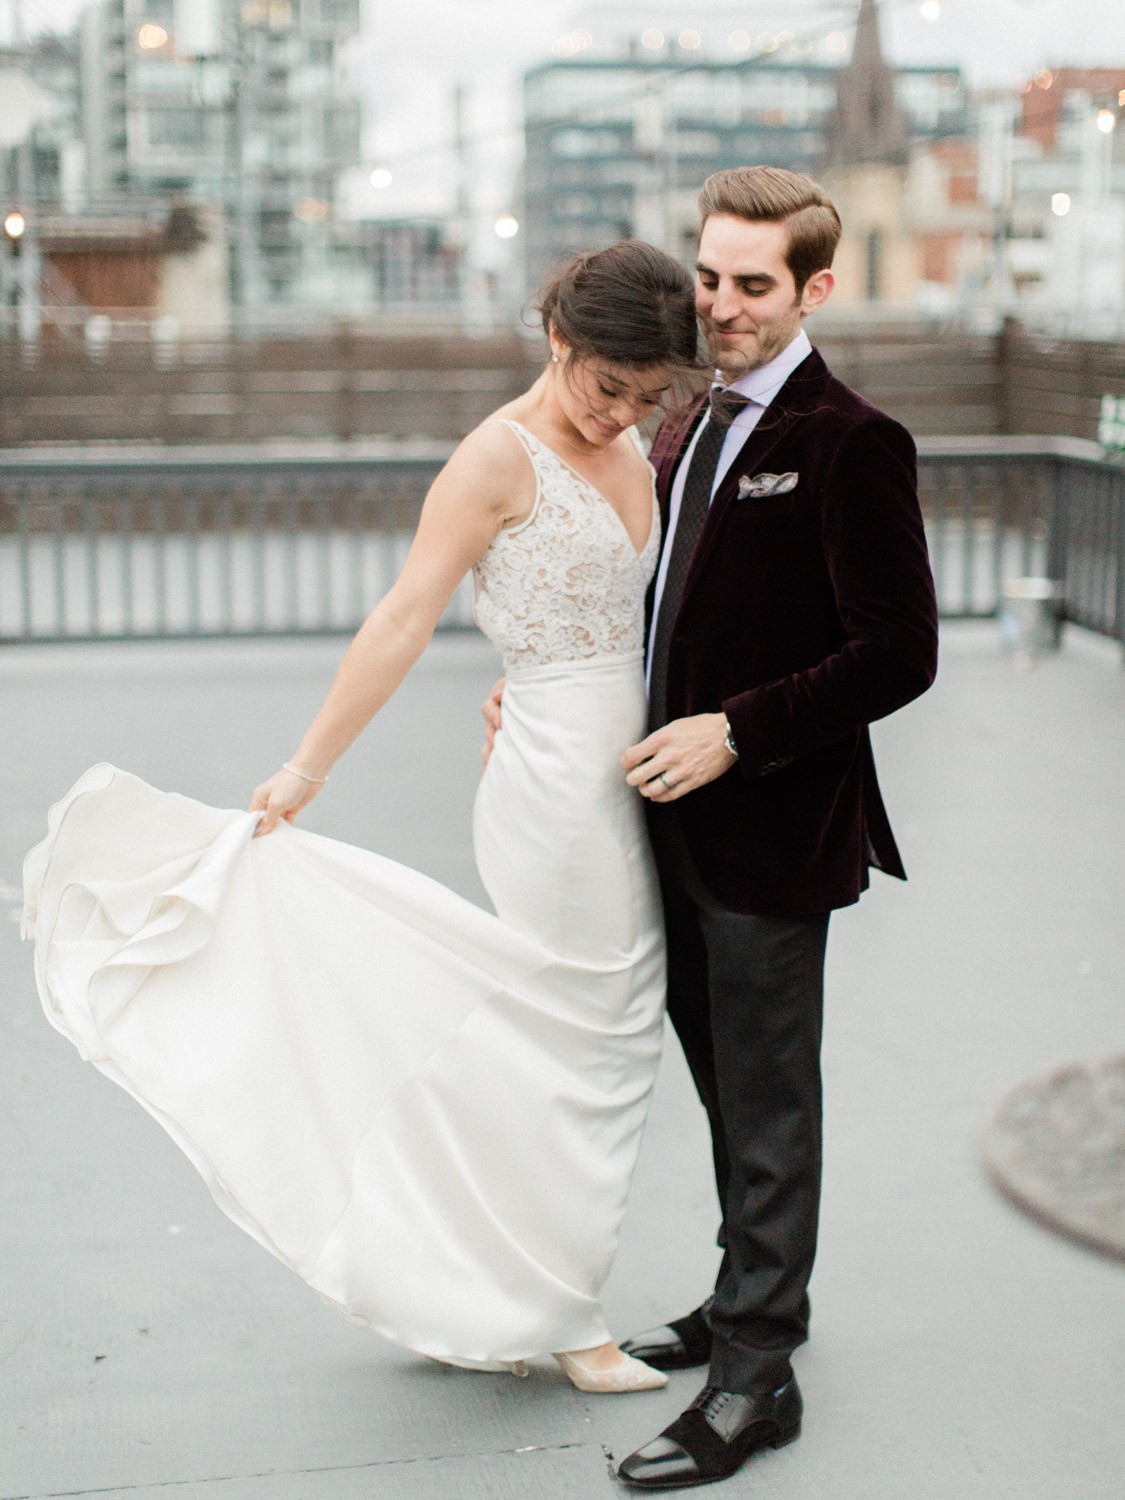 candid and romantic photograph of the bride and groom dancing on the rooftop of the Burroughes. Captured by Toronto wedding photographer Corynn Fowler Photography